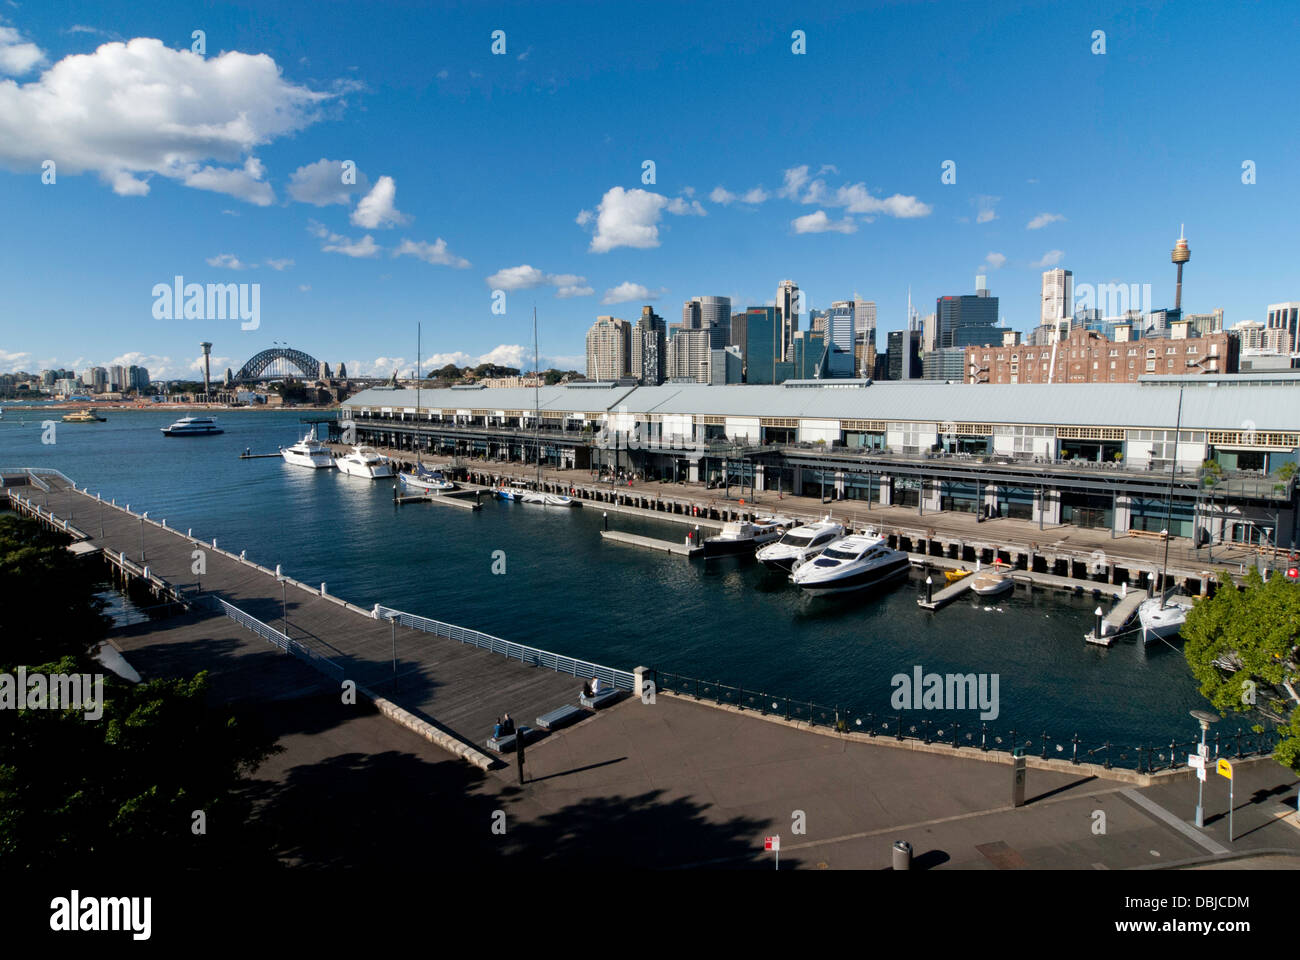 The view from Giba Park, looking down at regenerated wharves, Pyrmont, Sydney, Australia - Stock Image